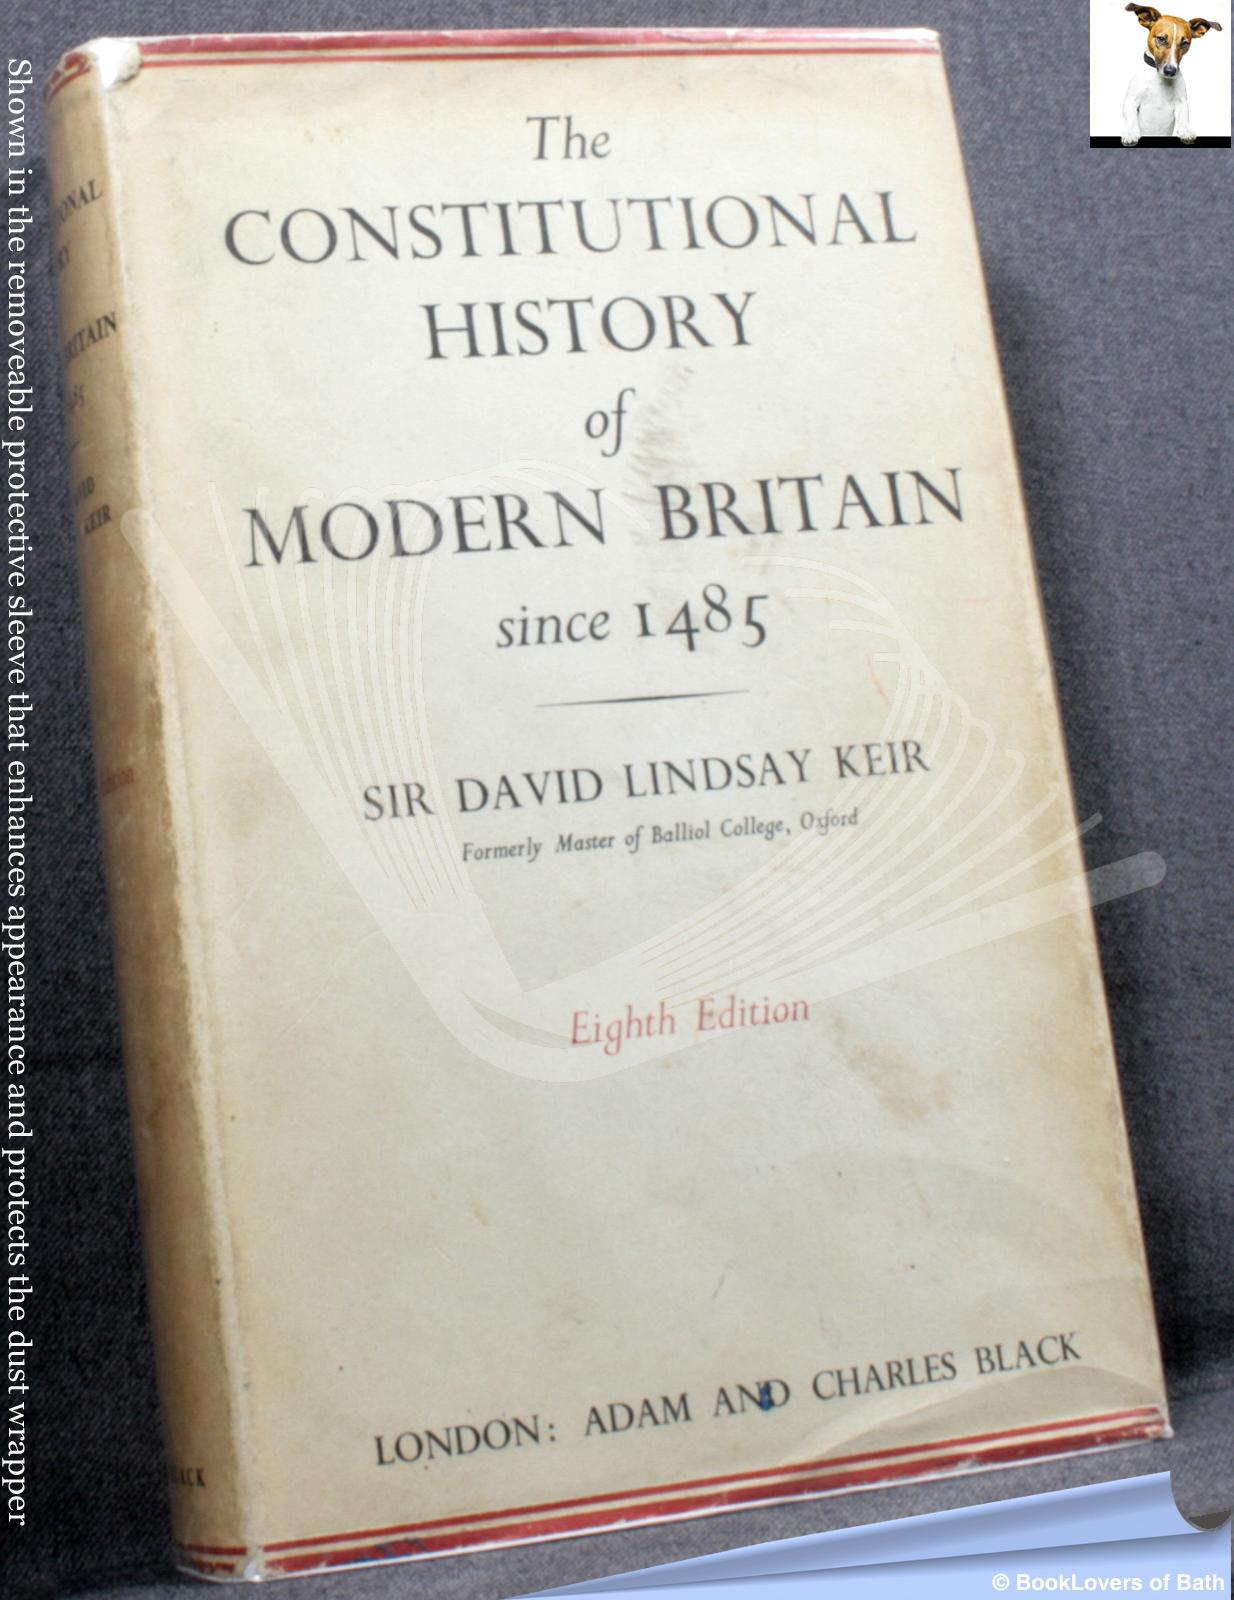 The Constitutional History of Modern Britain since 1485 - David Lindsay Keir